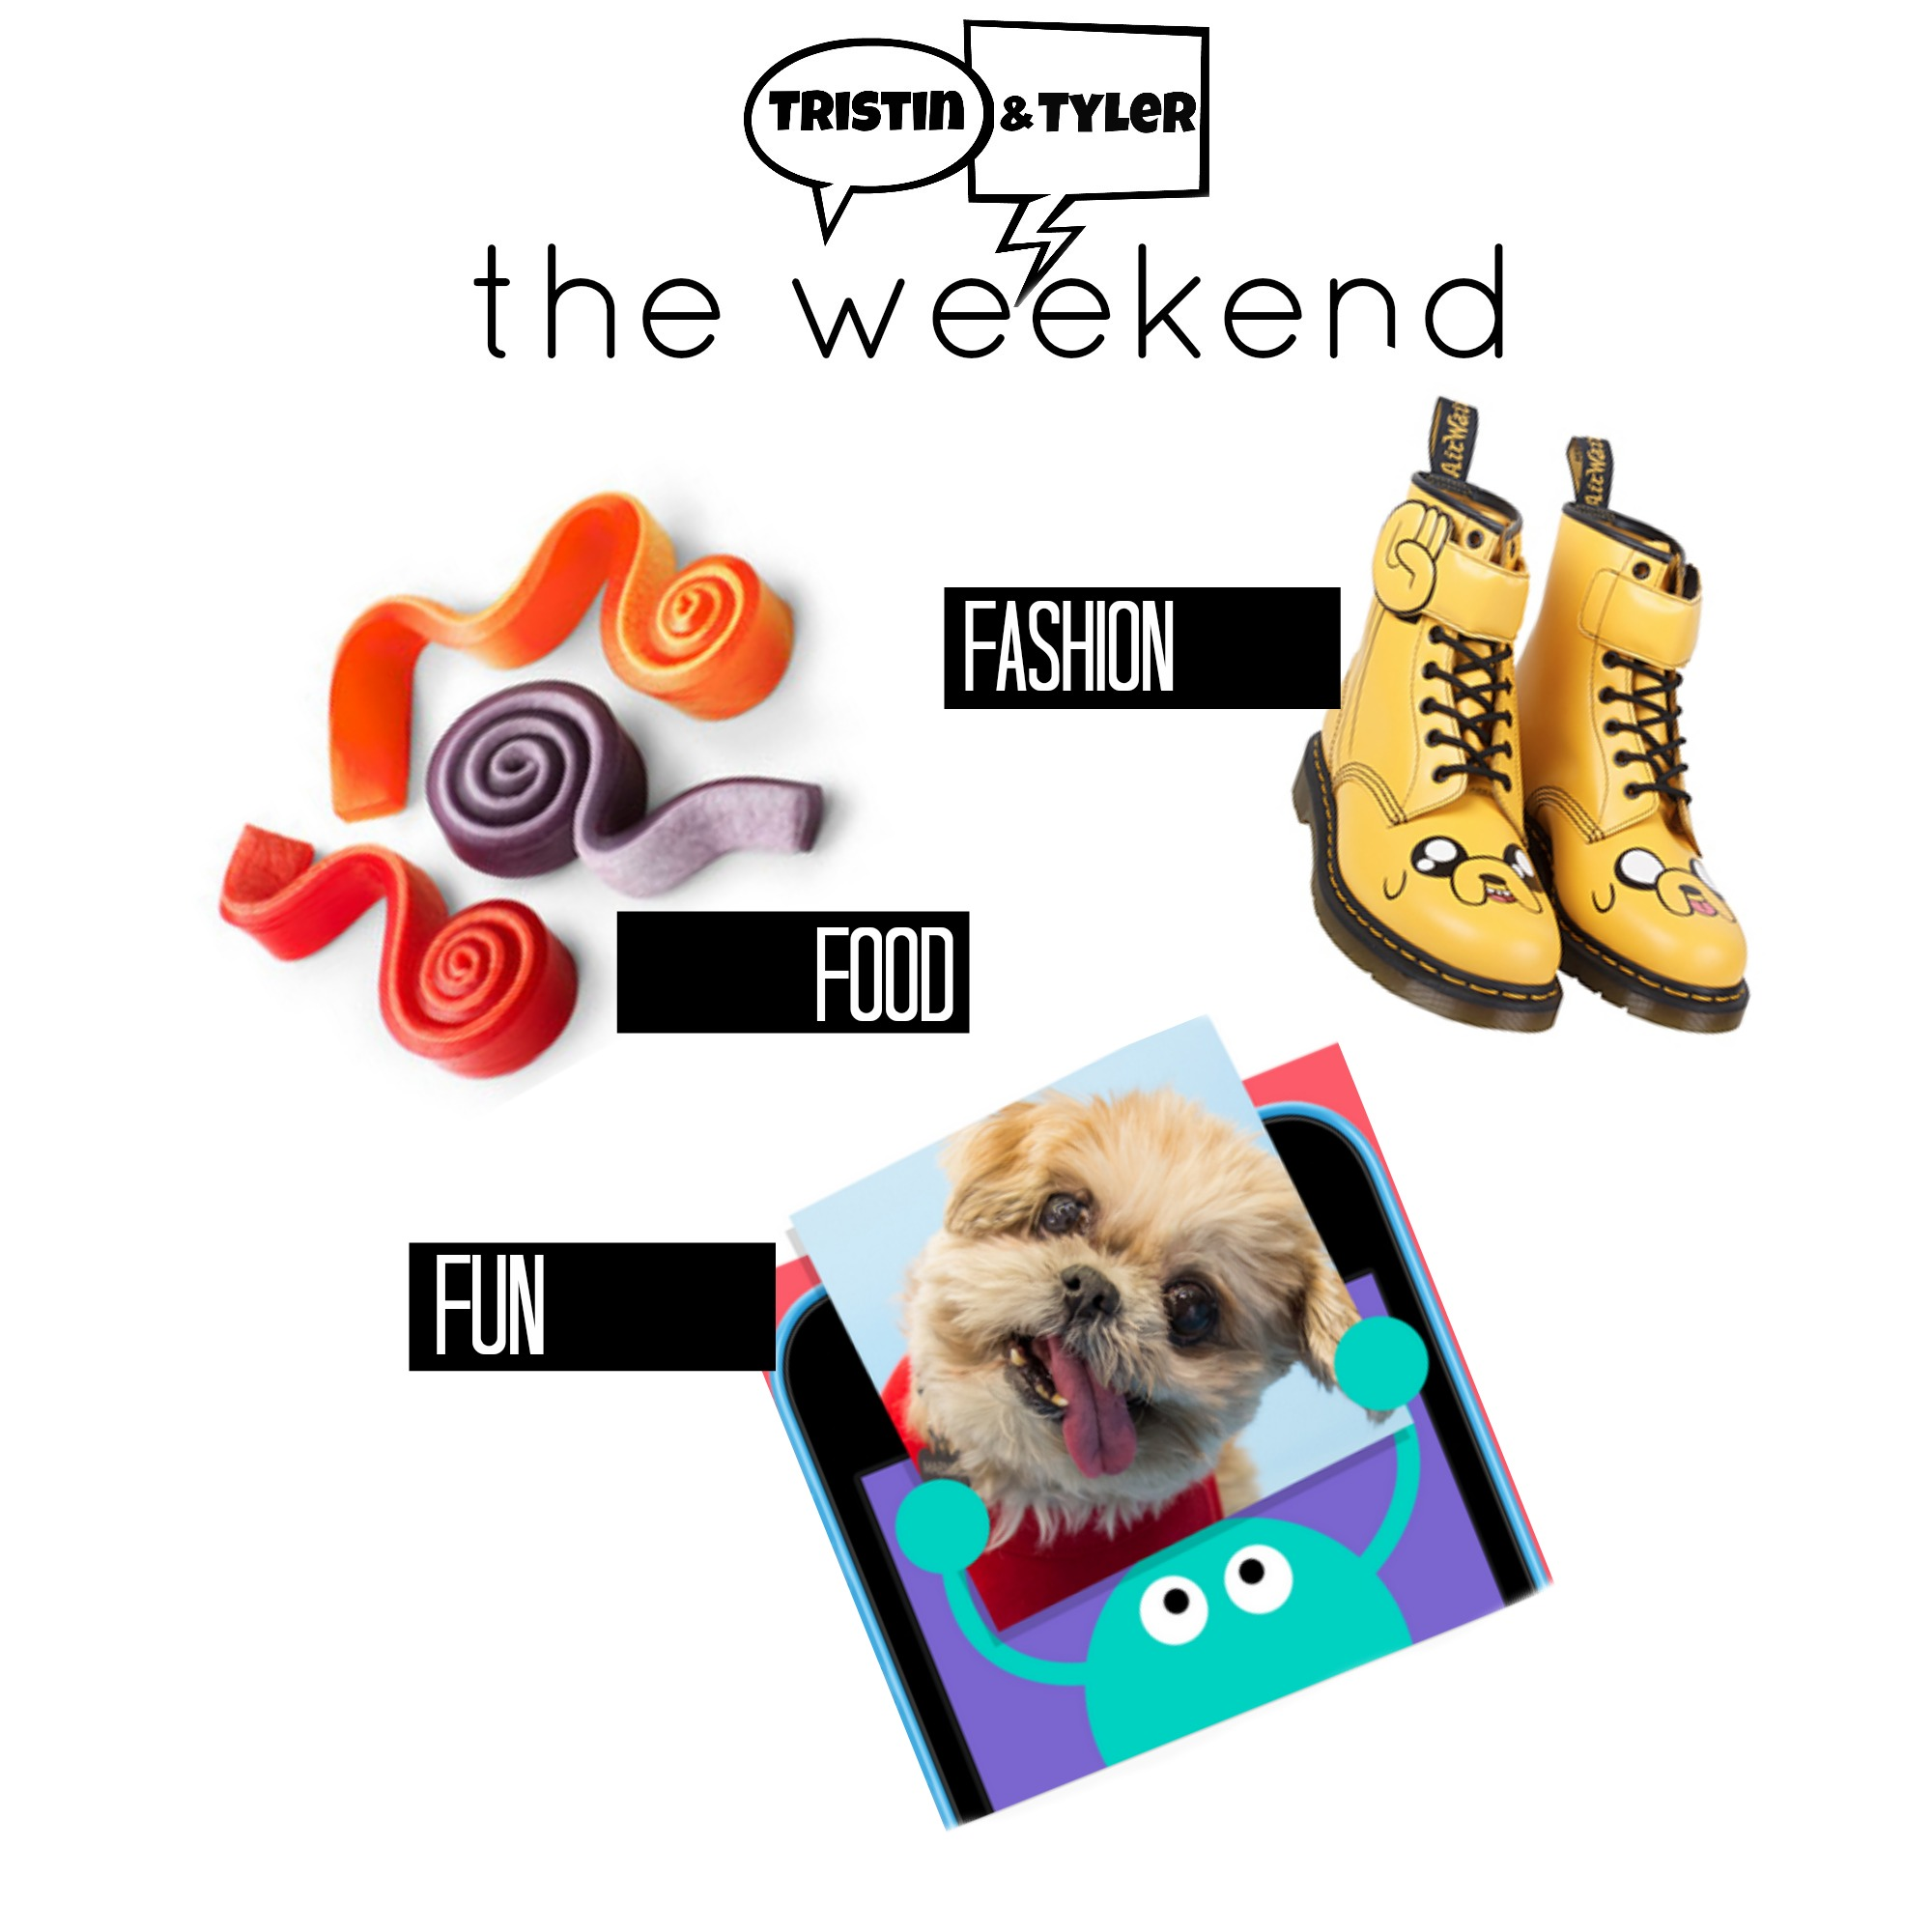 the weekend 3,6,15